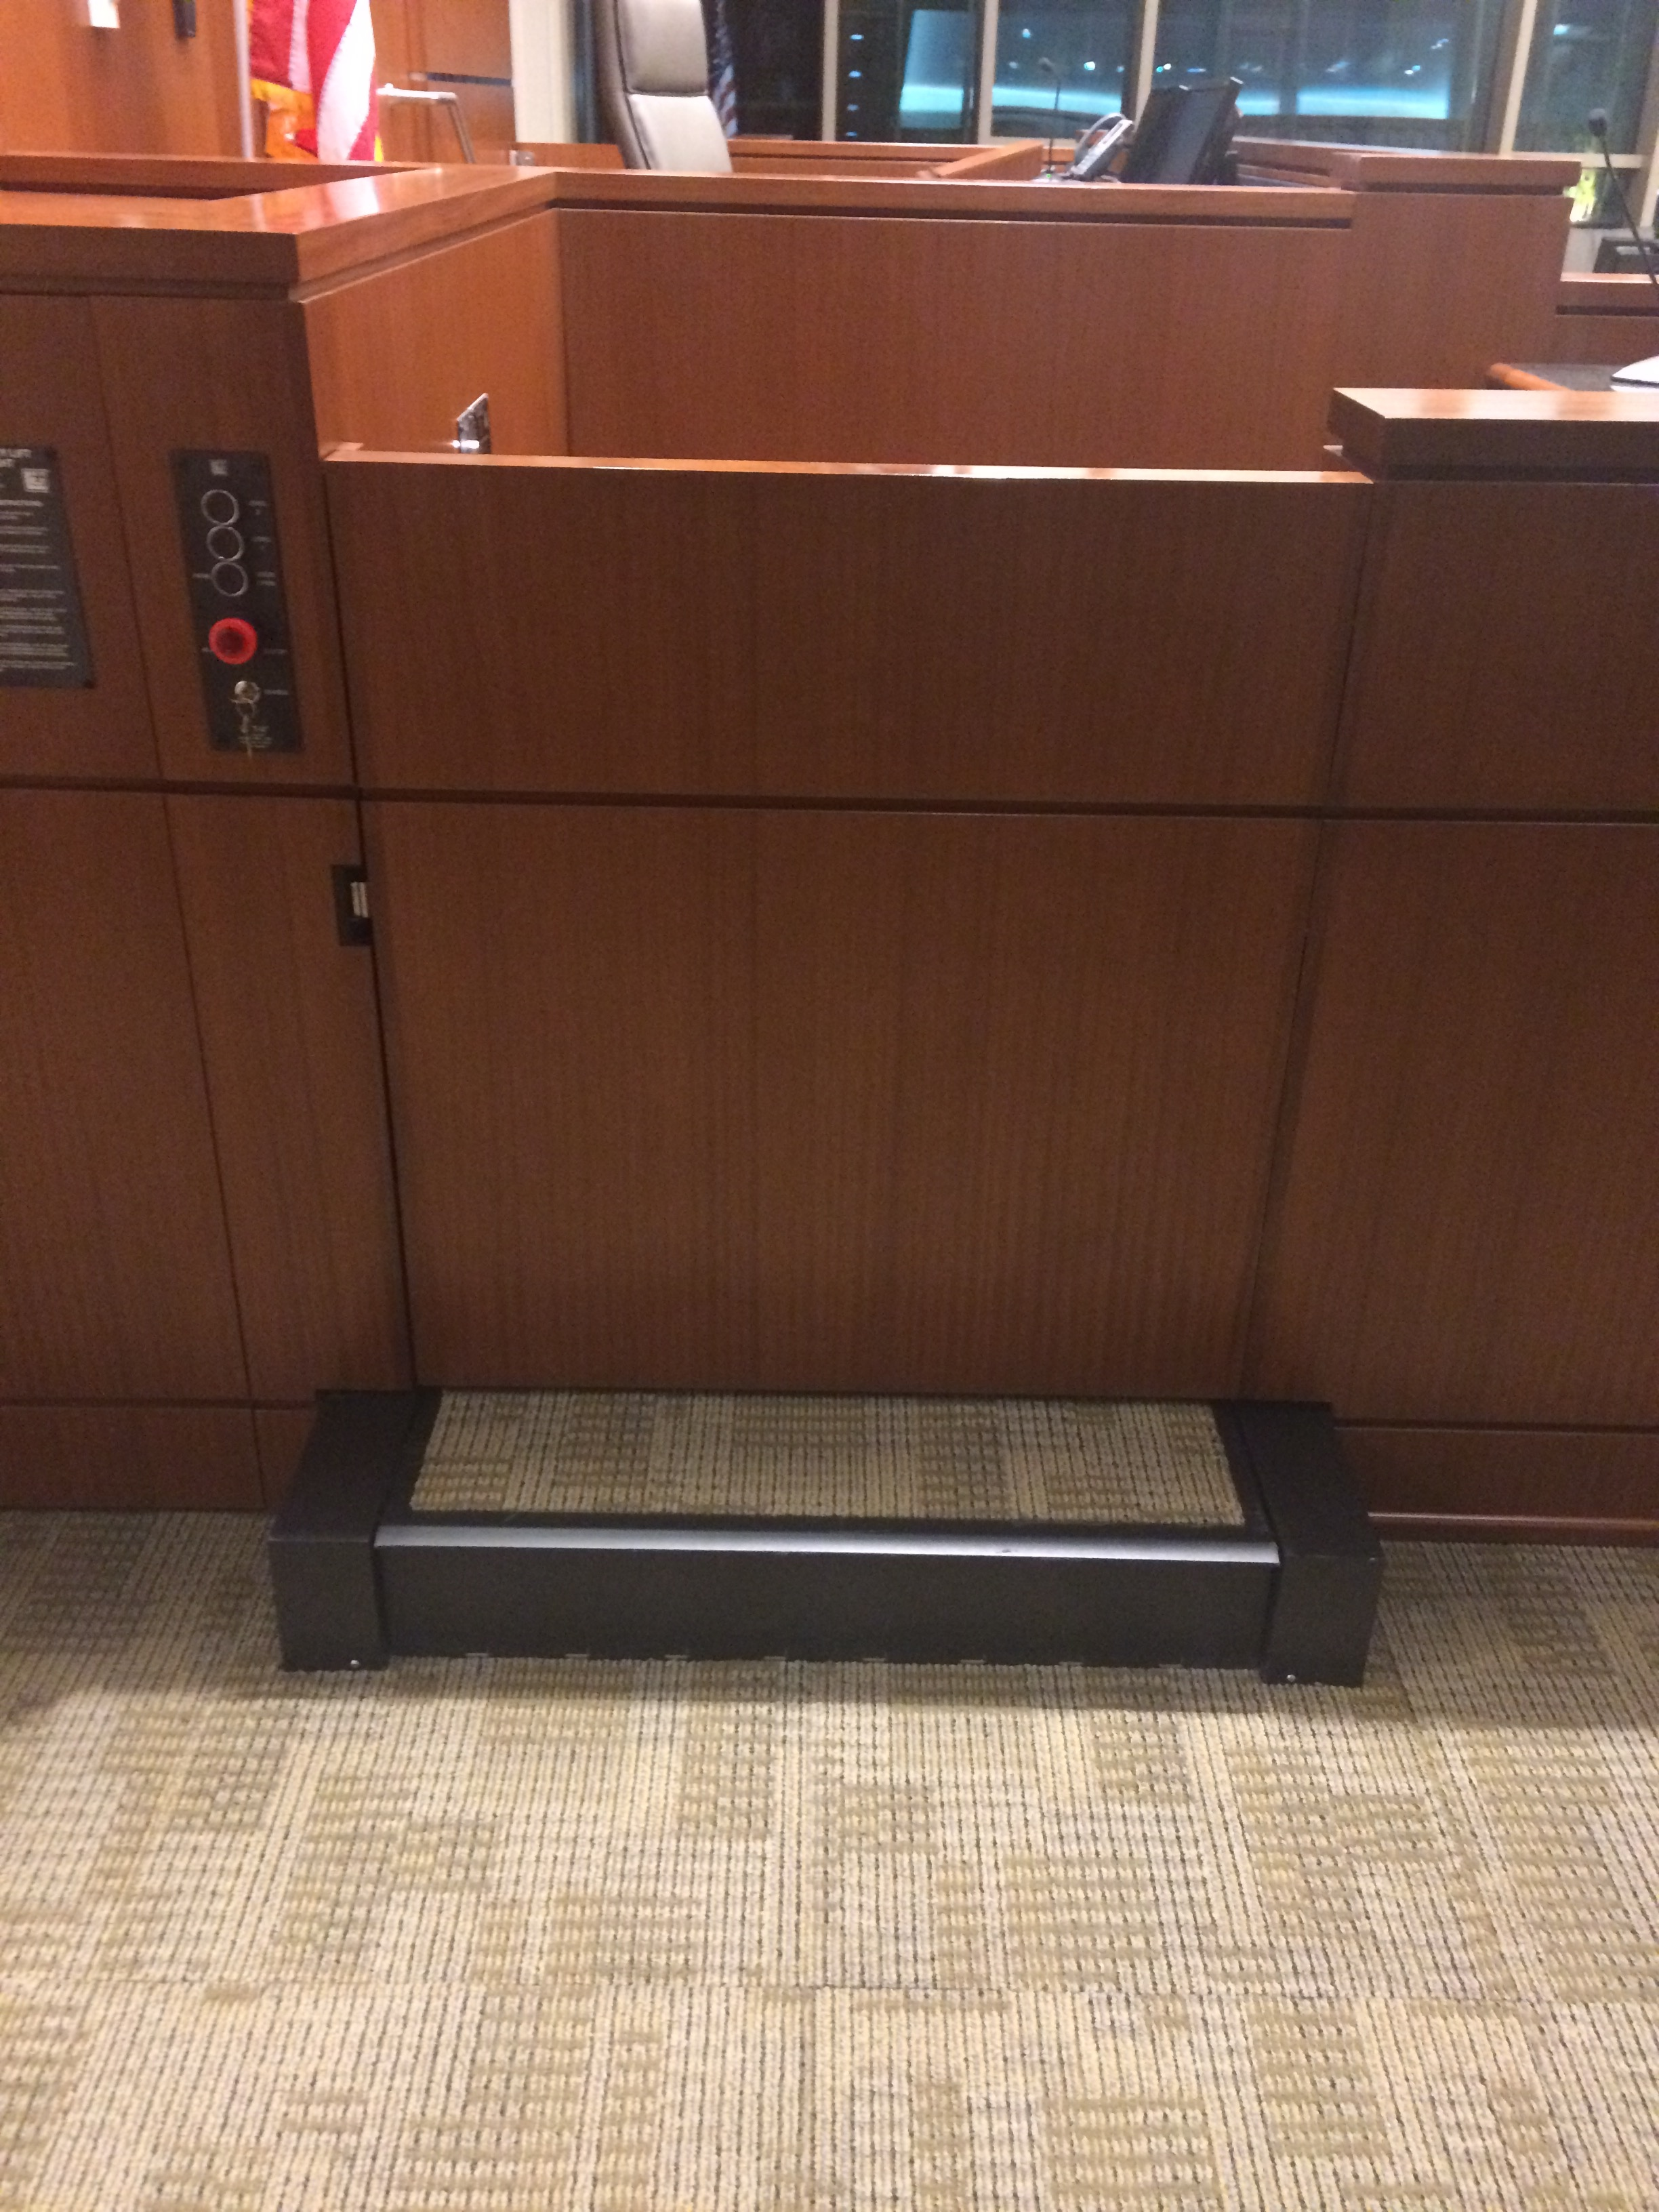 Witness lift positioned at witness level with lower level door closed. Equipped with operable step to allow ambulatory access. Lift encased in wood millwork blending in with courtroom millwork. Lift is readily available and independently operable